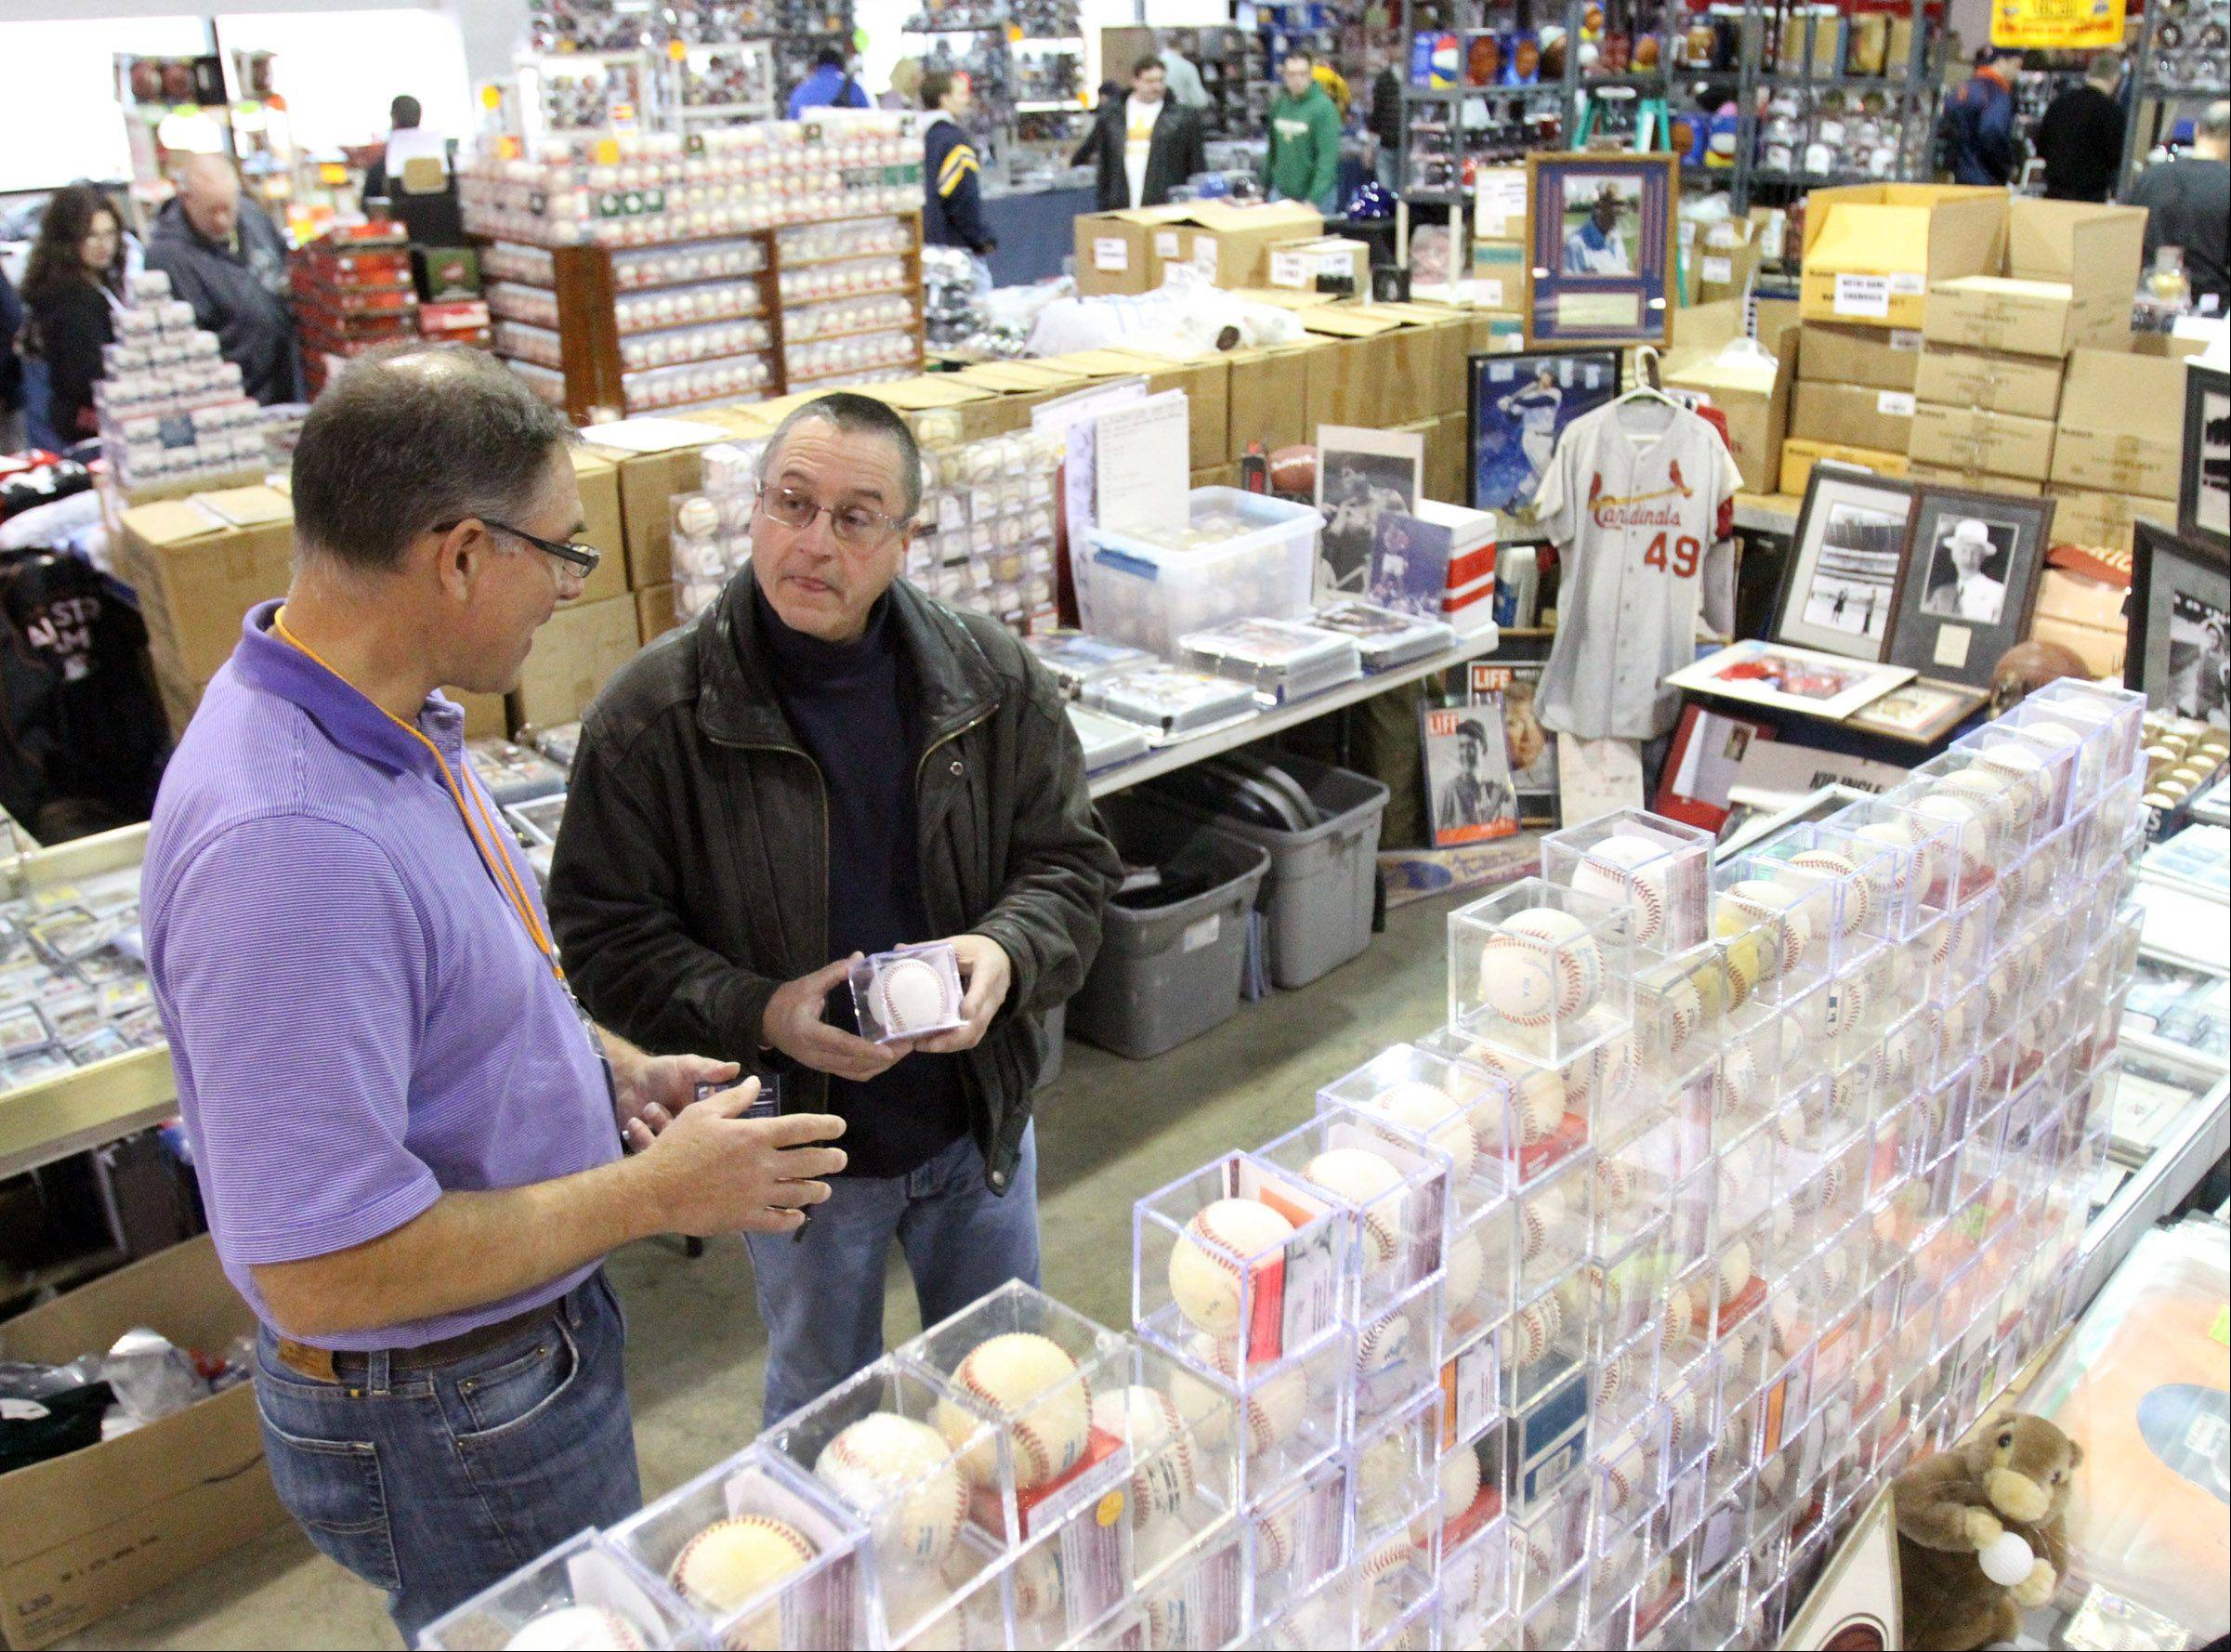 Marc Konny, of Lakewood, right, talks autographed baseballs with sports memorabilia trader Kip Ingle of Atlanta, Georgia during the 46th annual Sun-Times Sports Collectibles Show at Donald E. Stevens Convention Center in Rosemont Sunday.